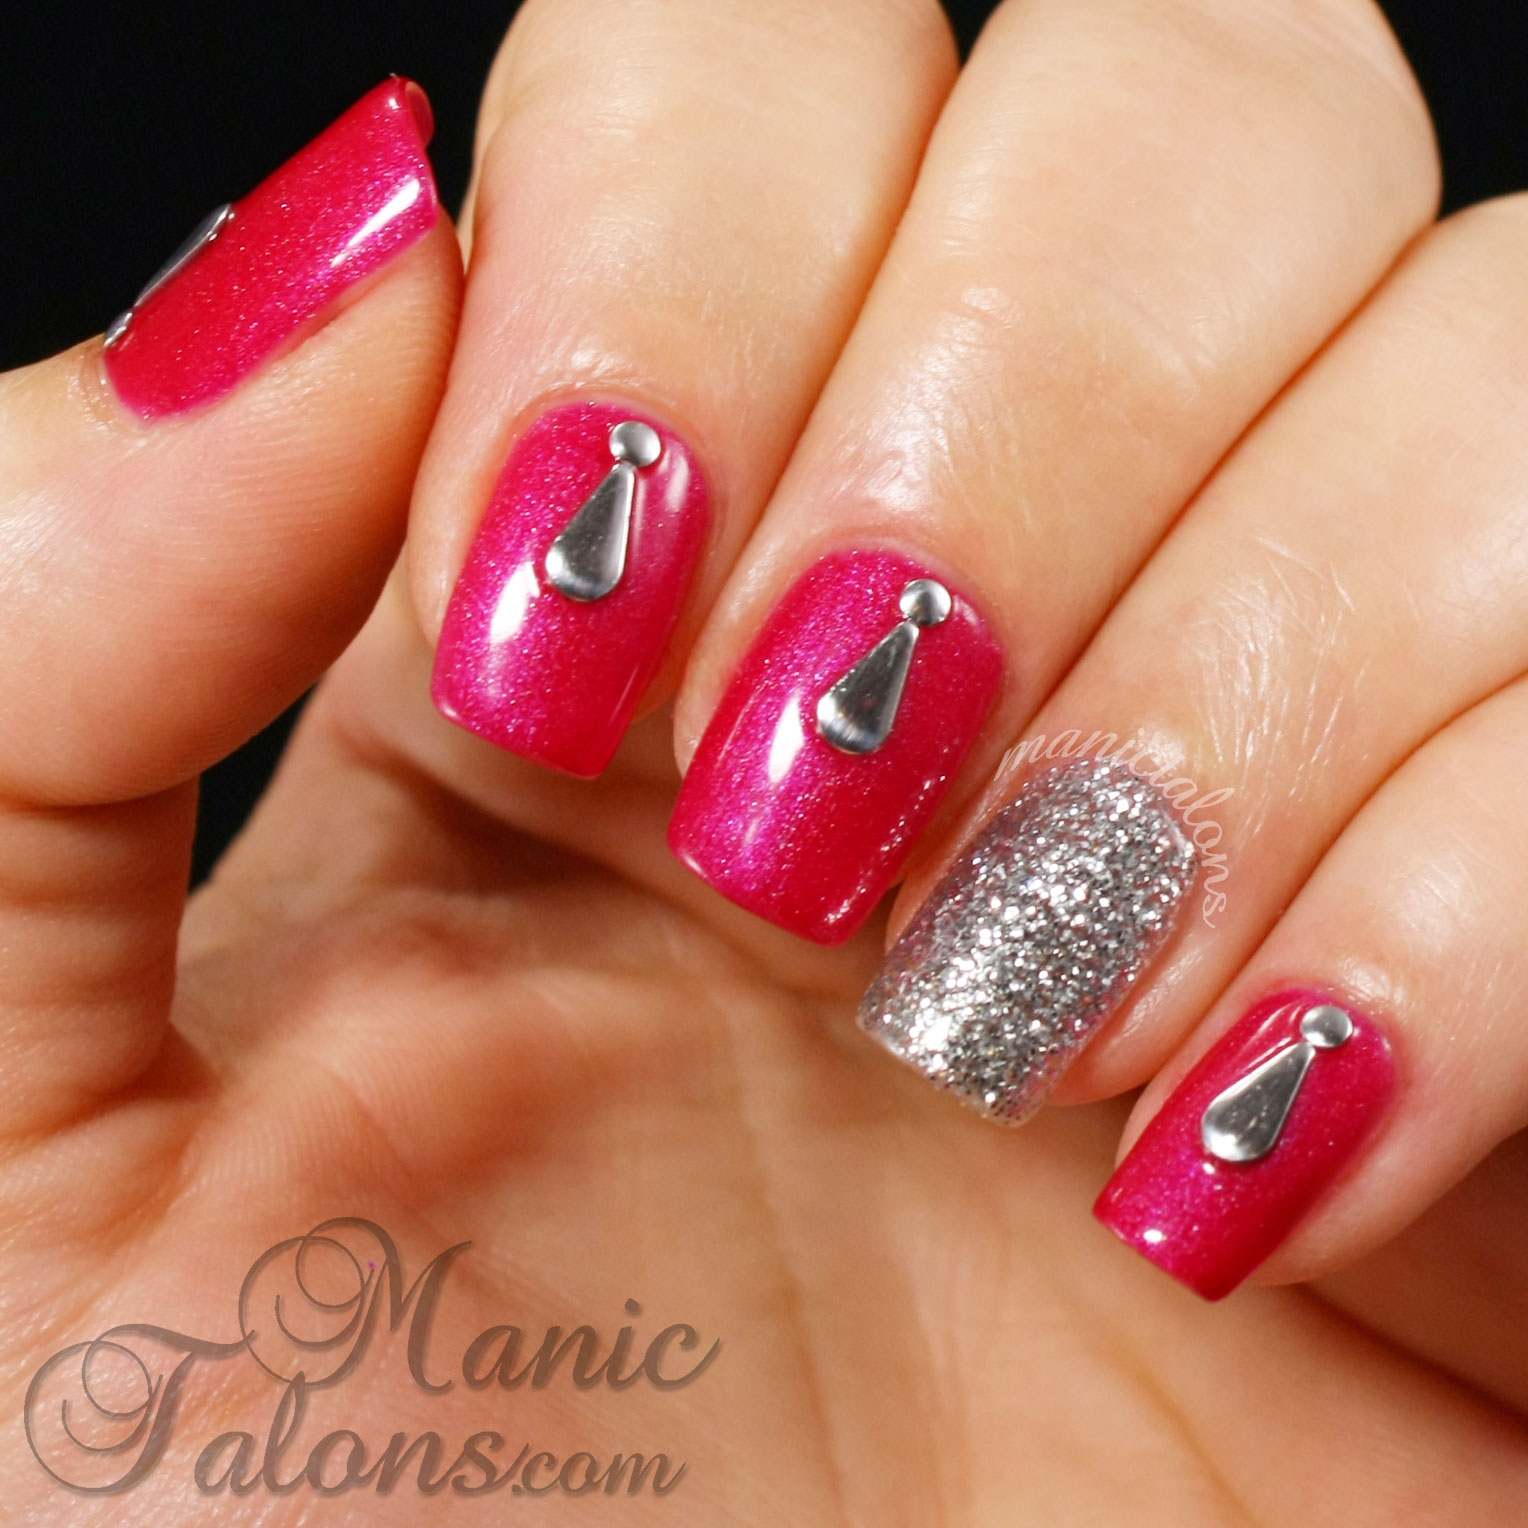 Couture Gel Polish Nail Art